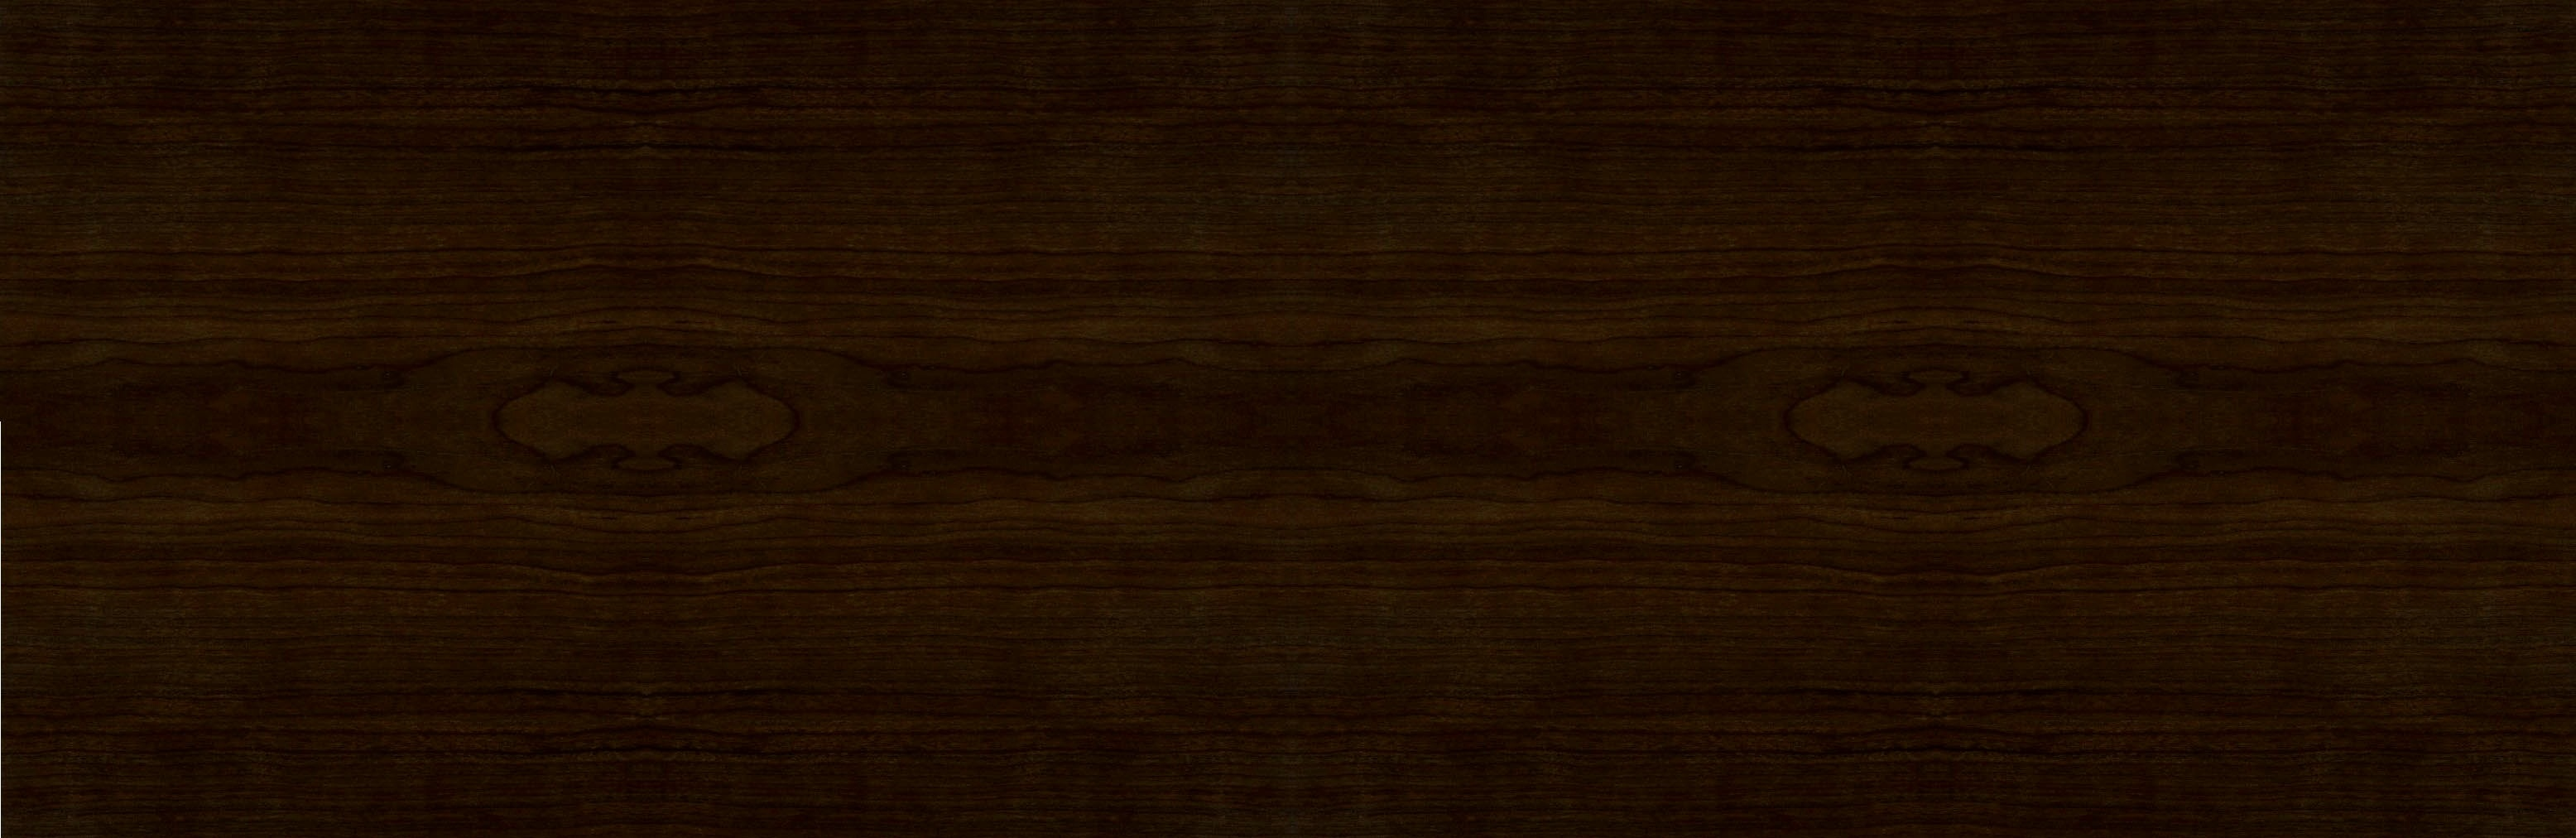 dark wood floor texture viewing gallery